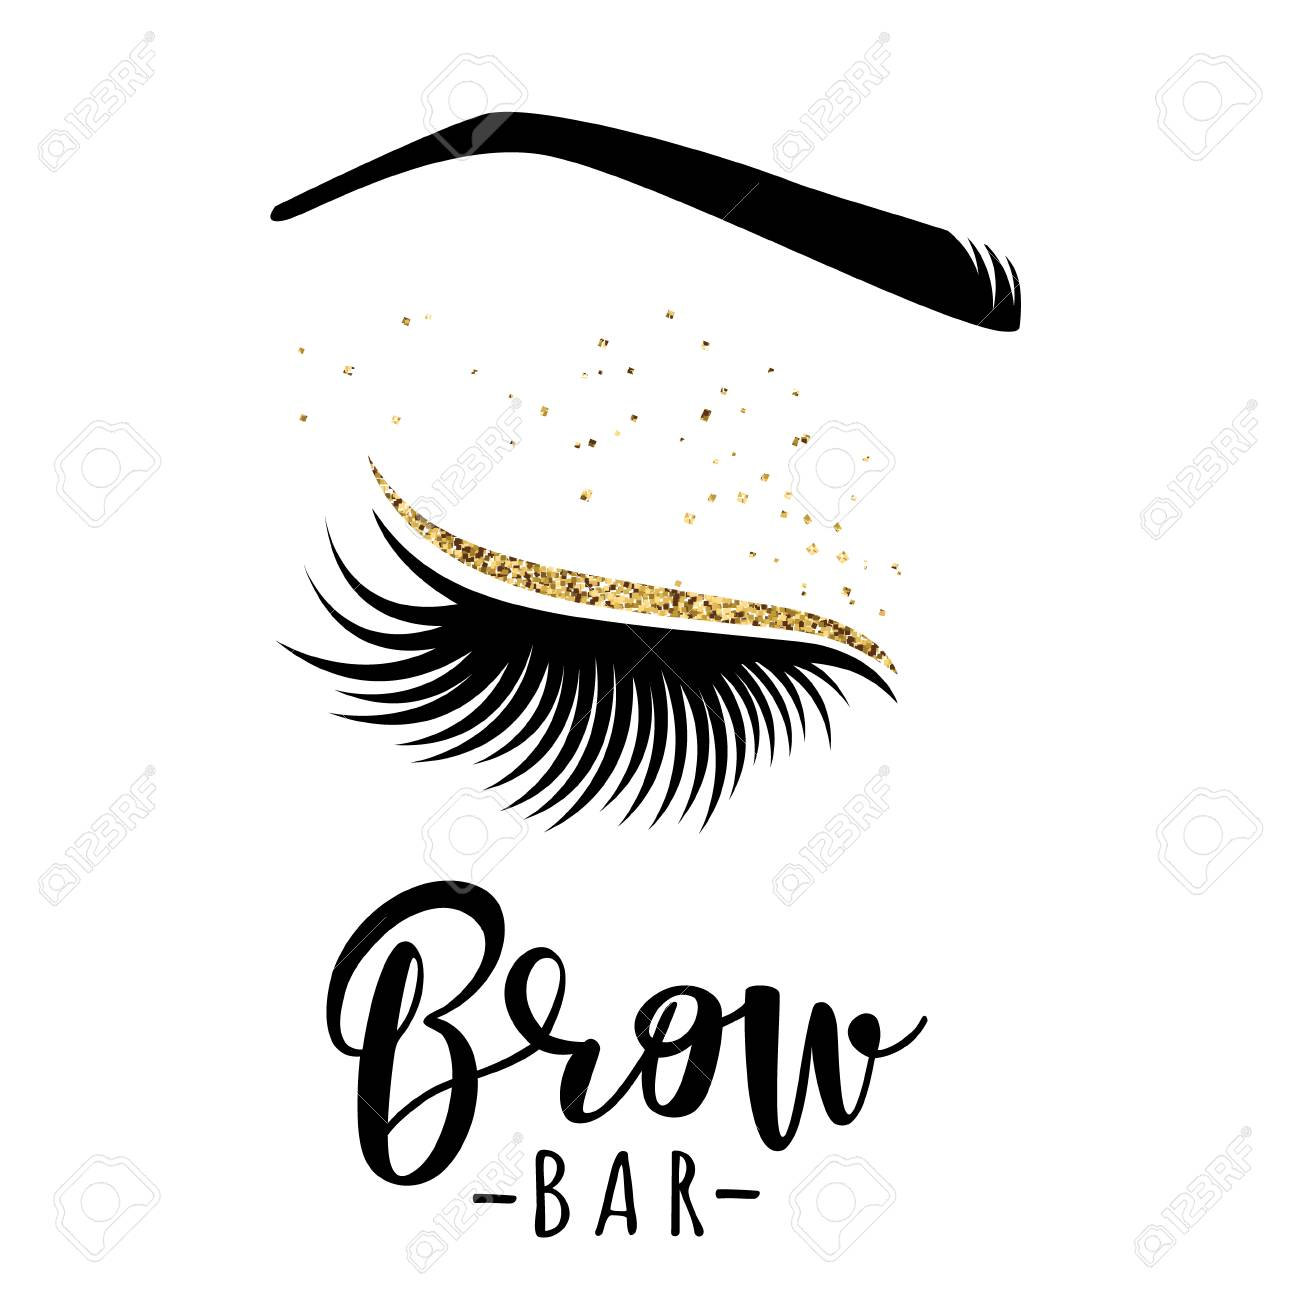 Brow bar logo  Vector illustration of lashes and brow  For beauty